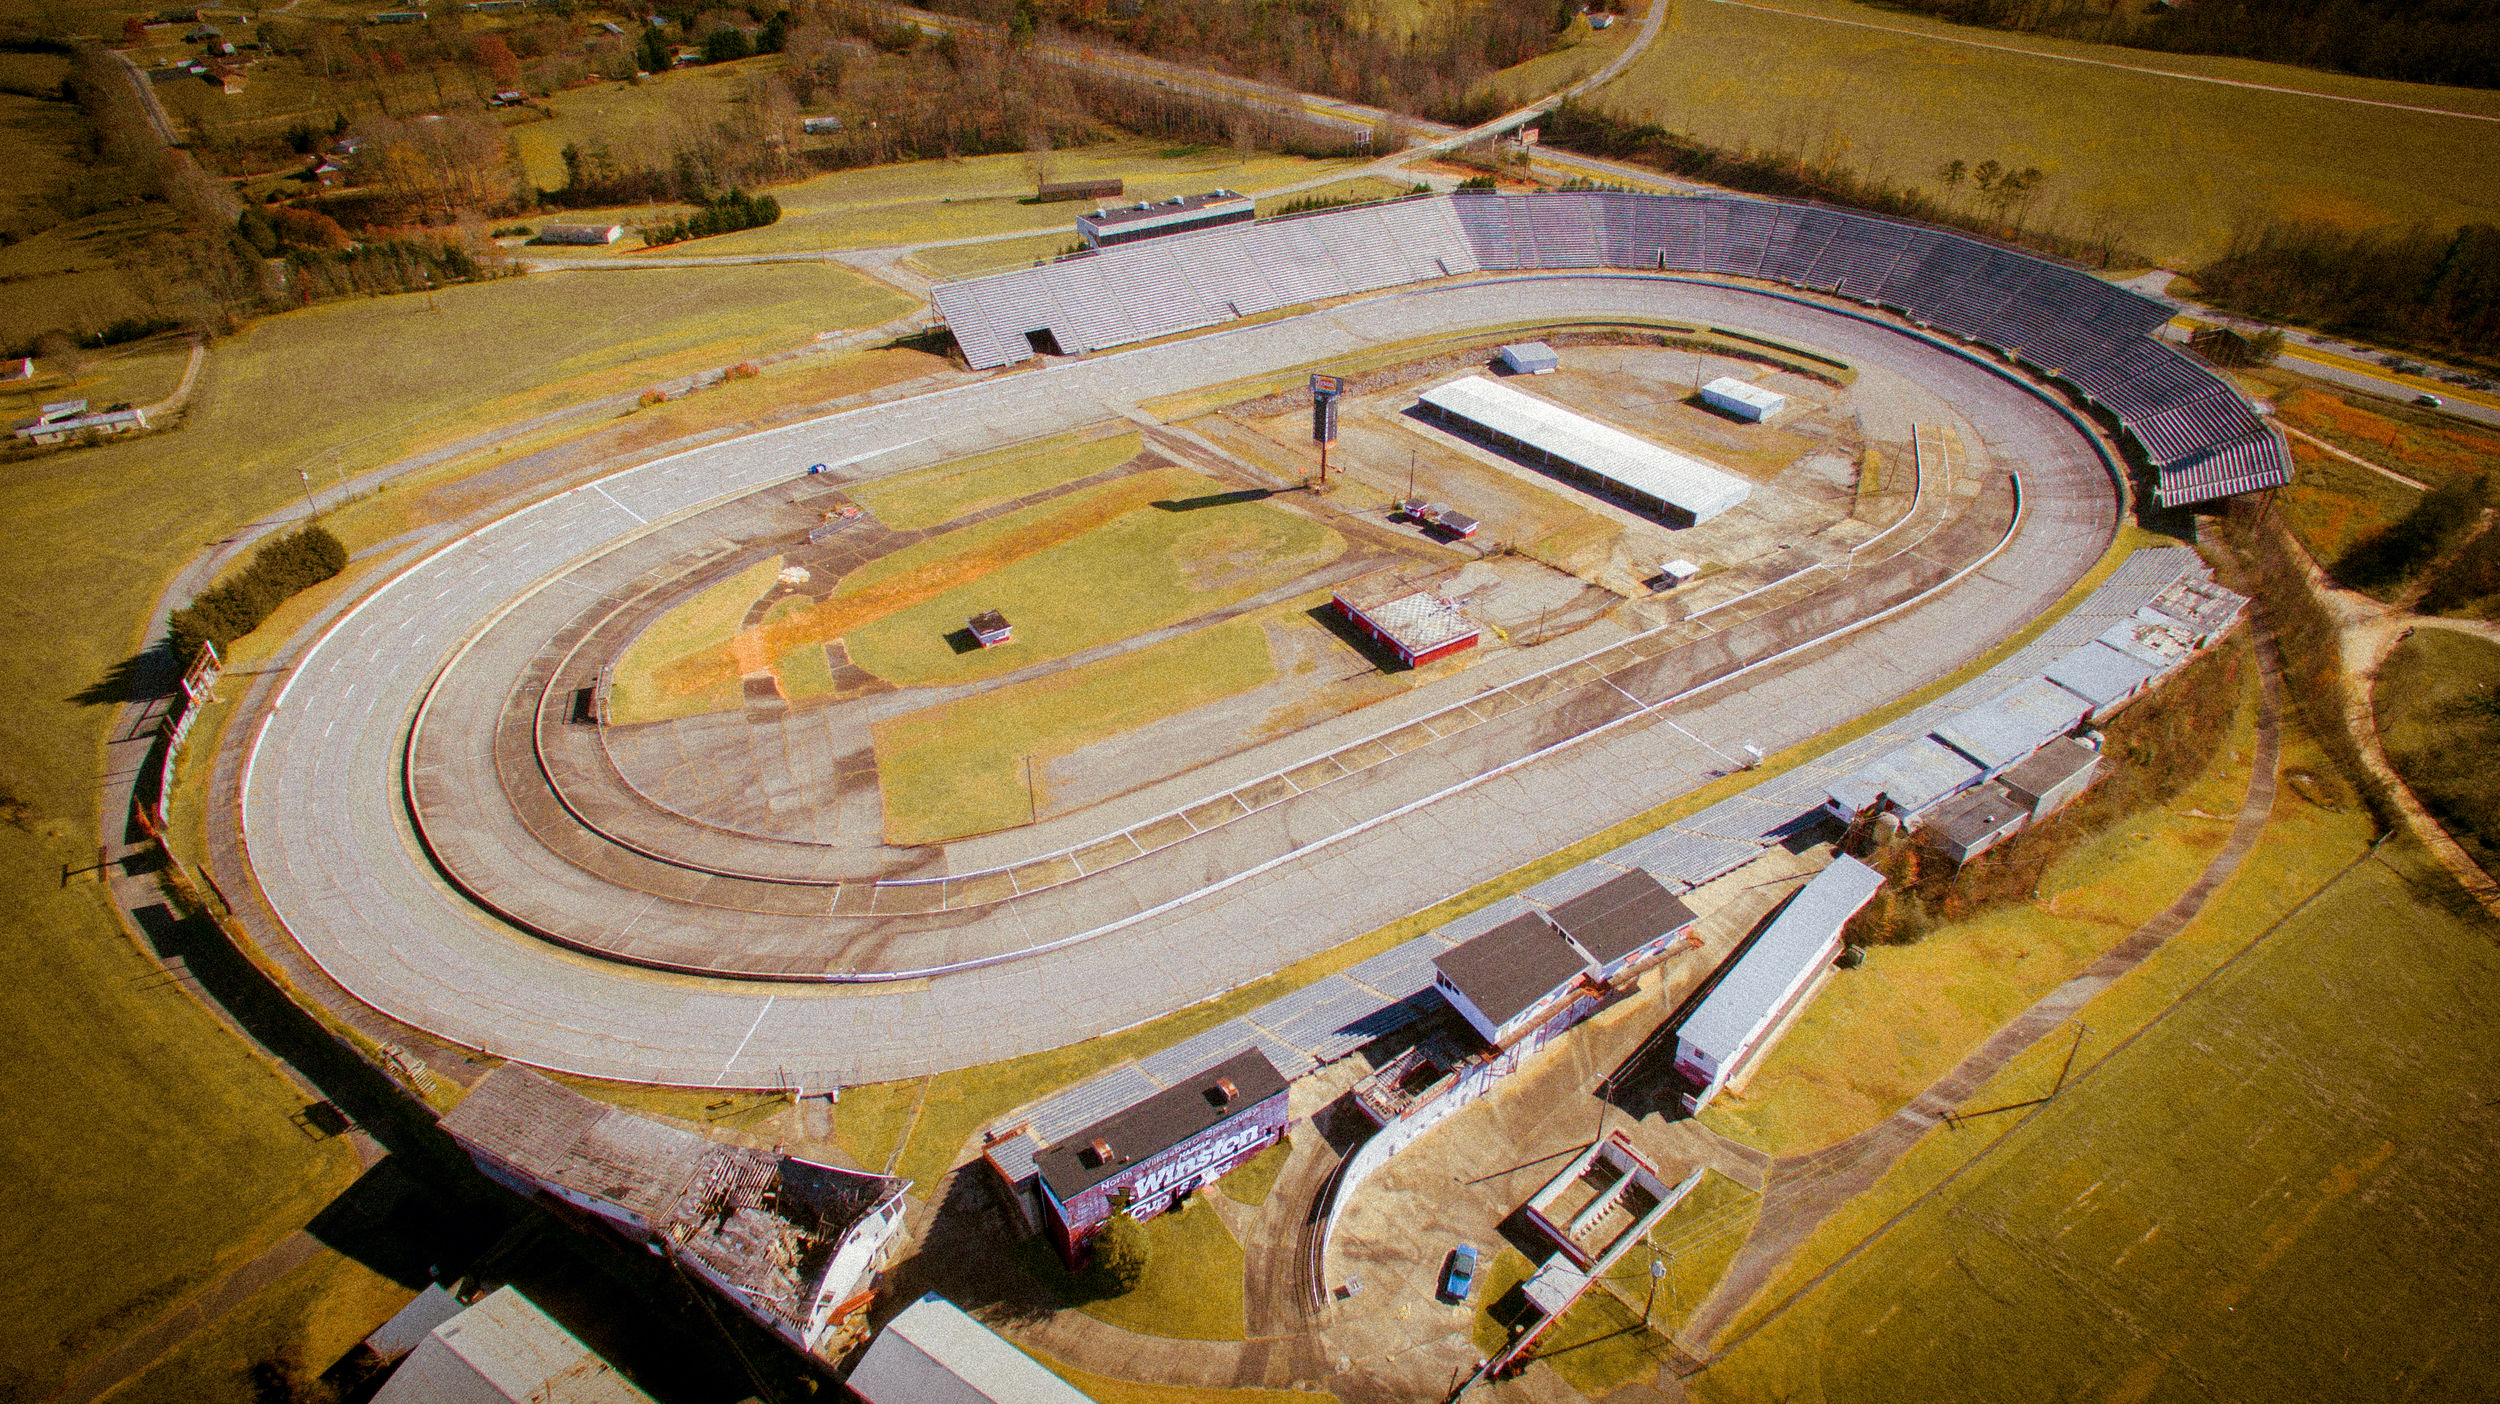 This Was North Wilkesboro Speedway